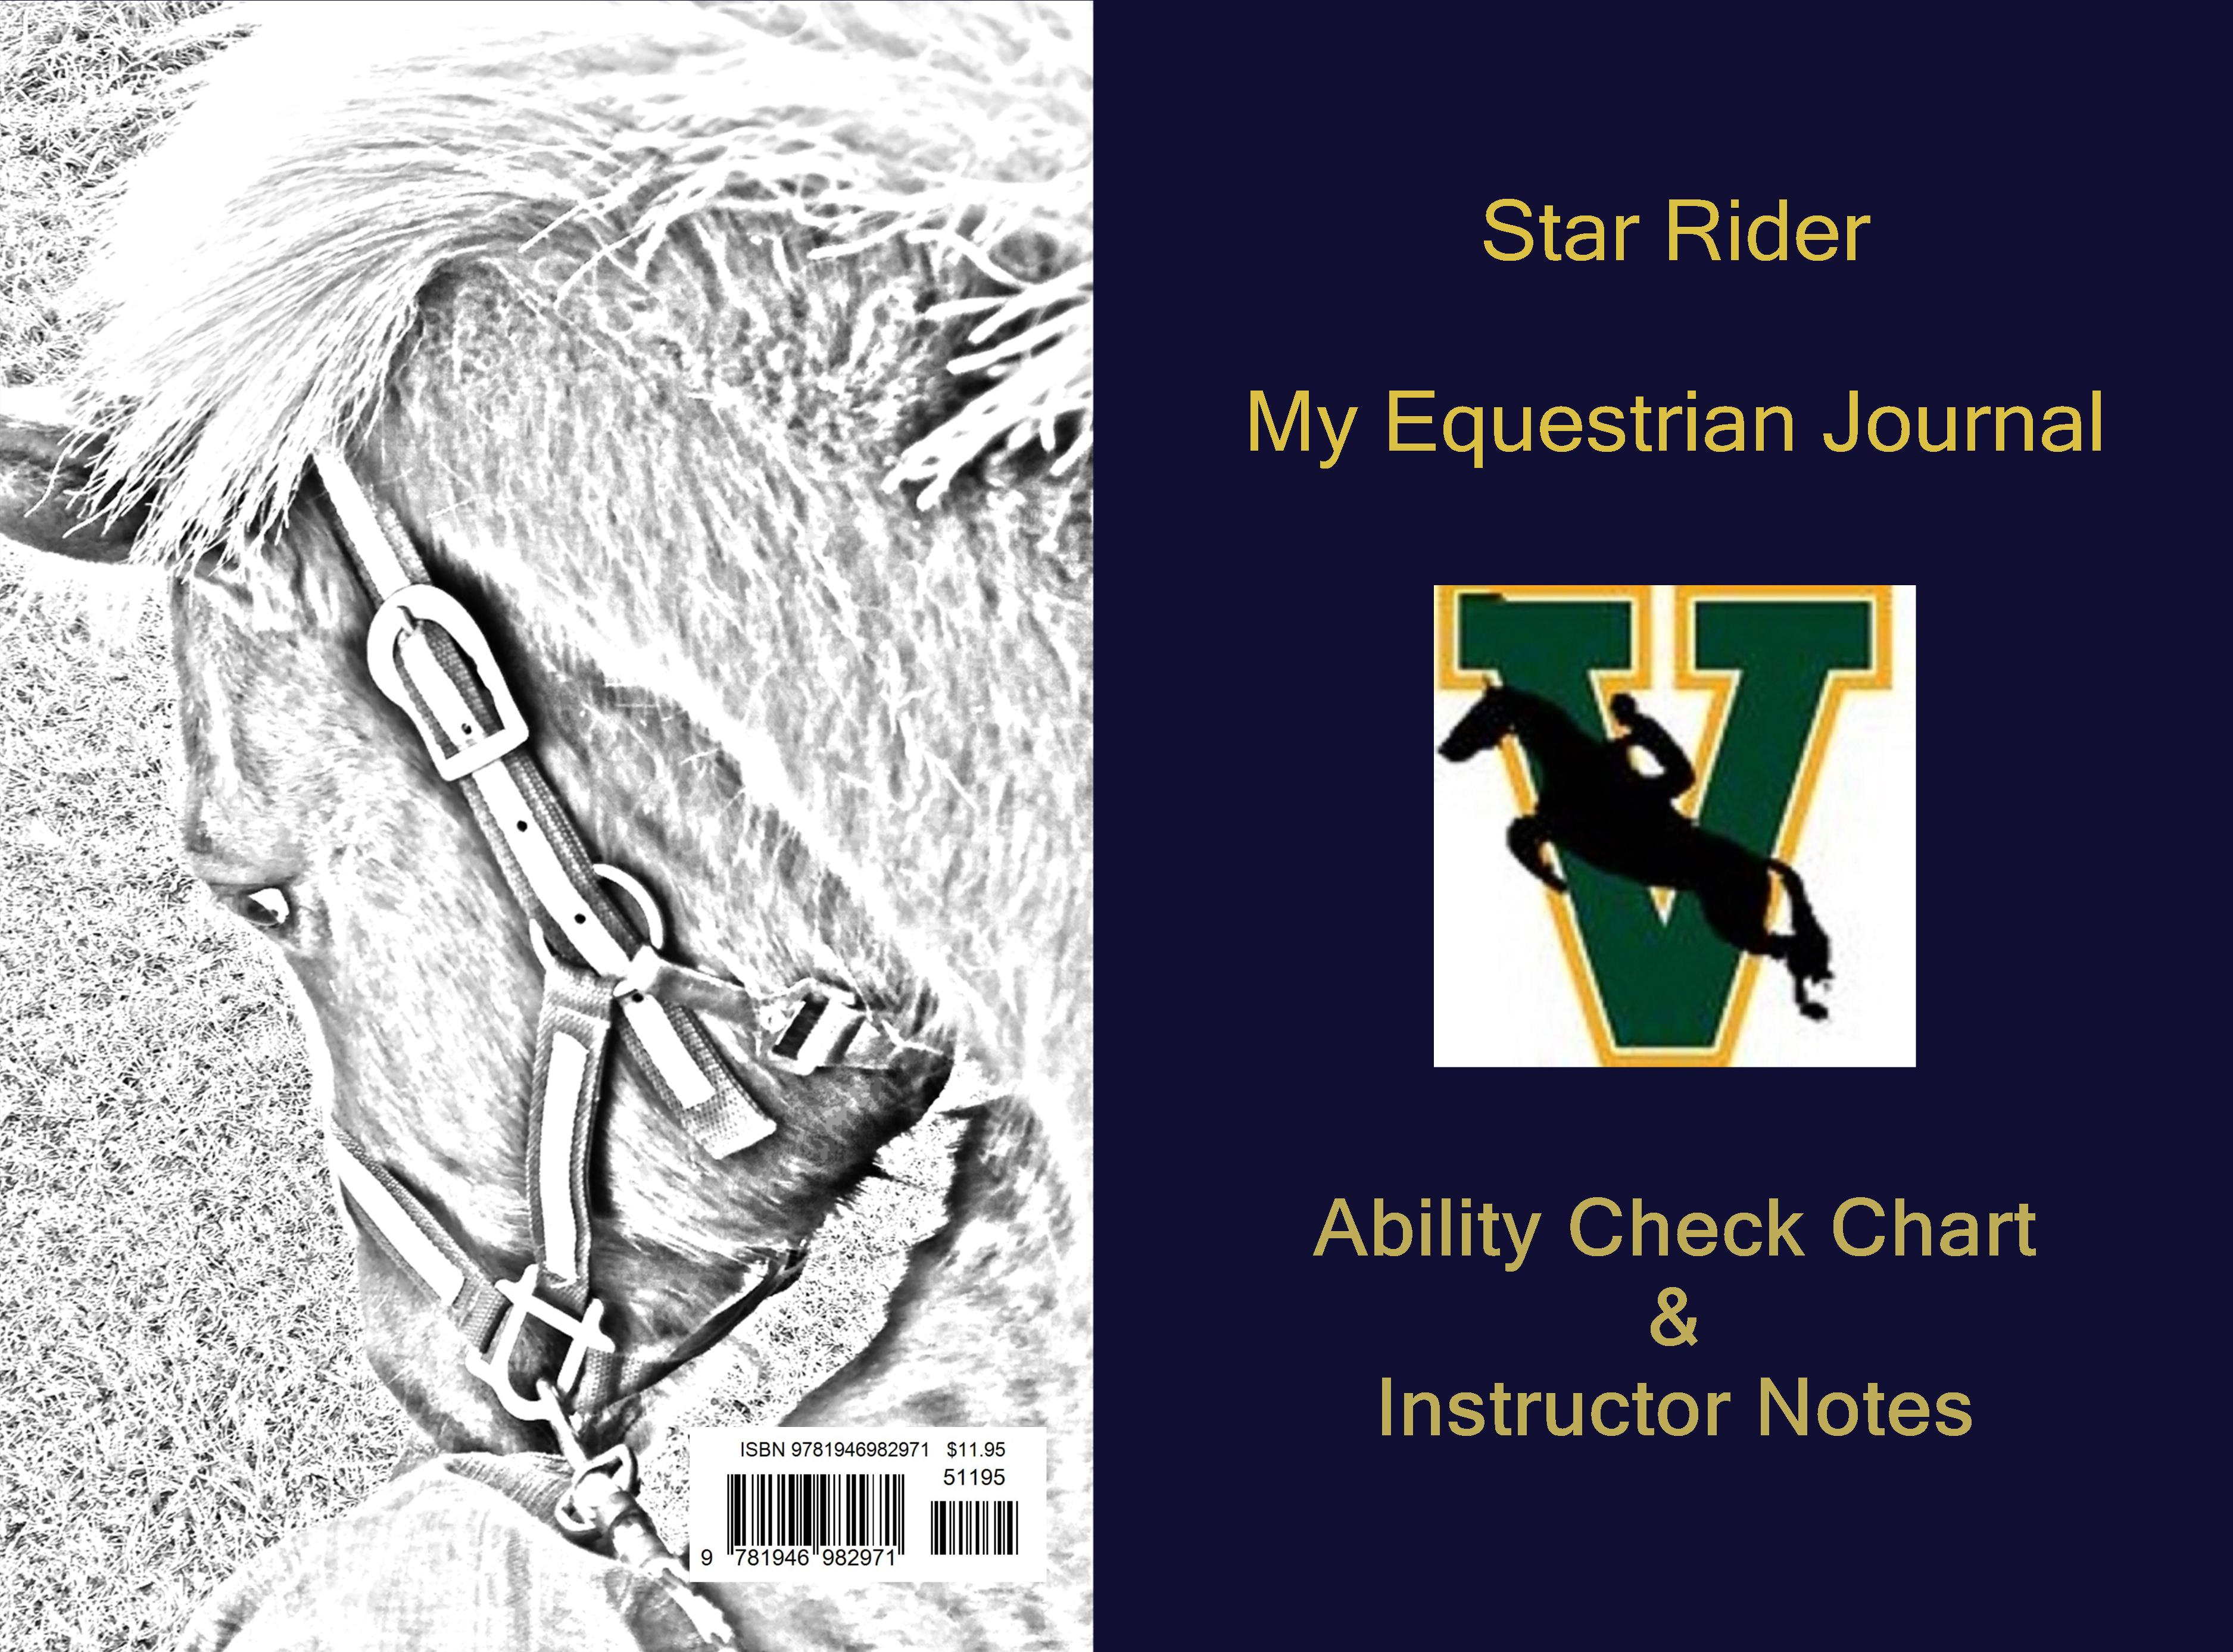 Star Rider My Equestrian Journal cover image